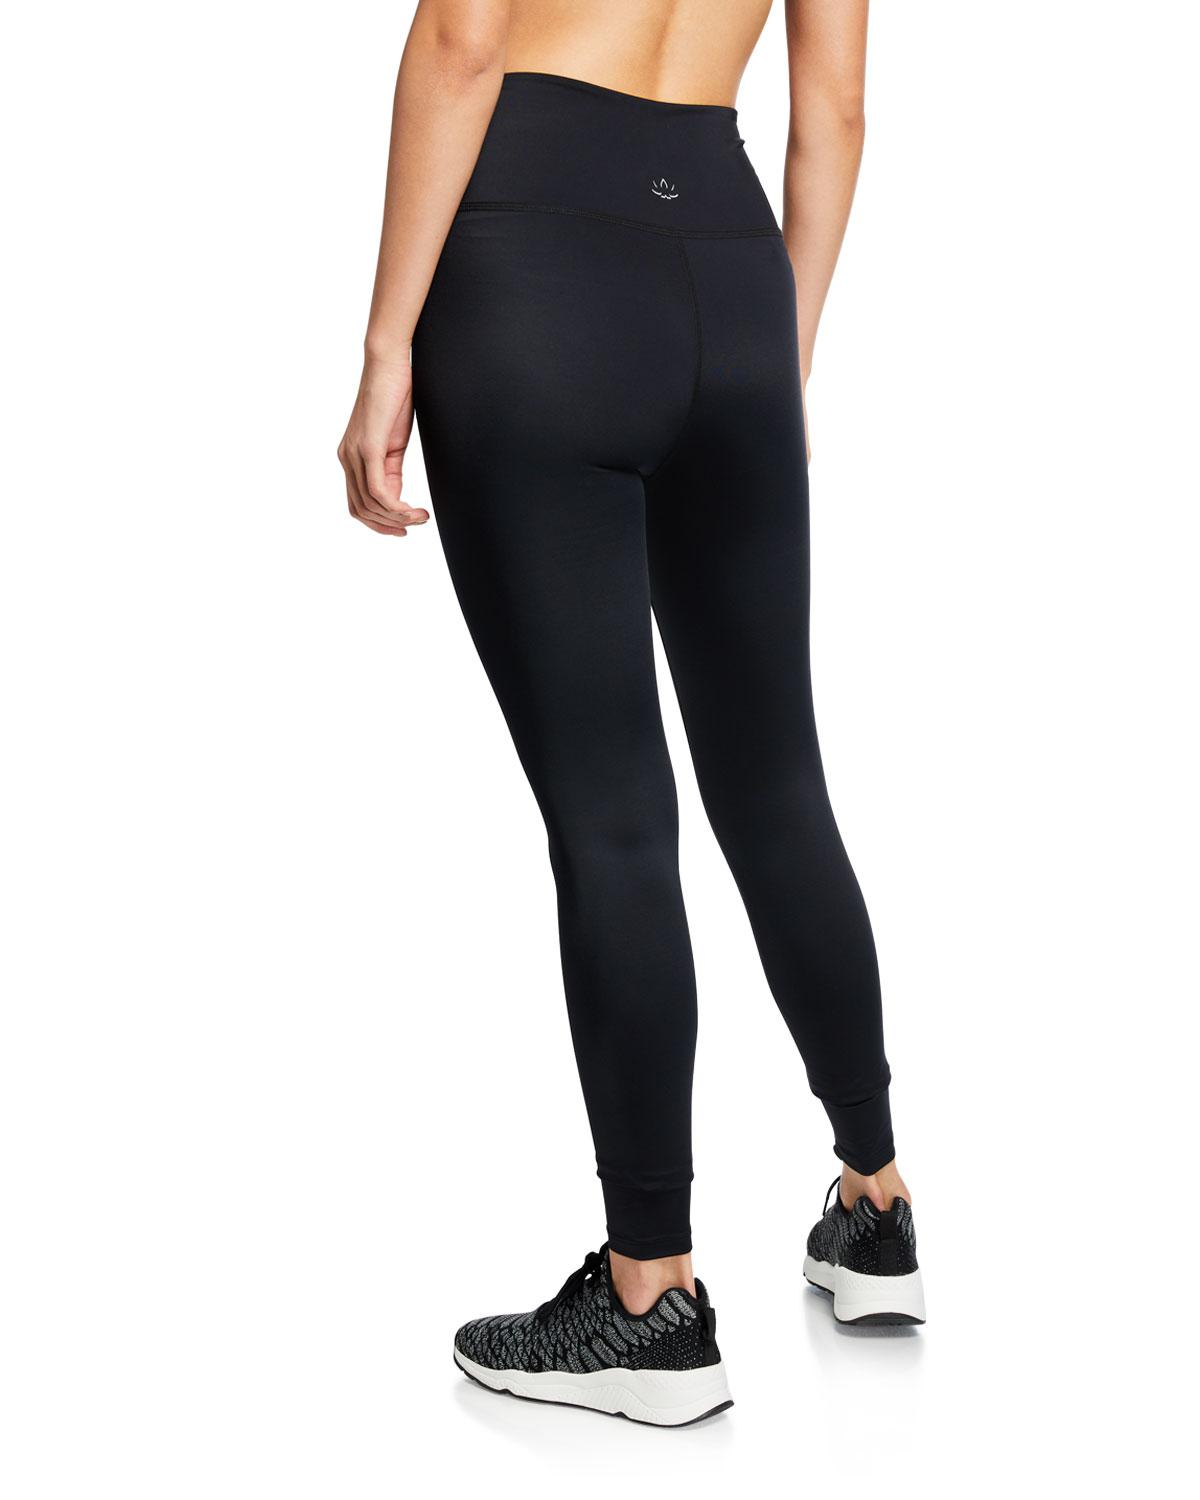 a90dc9a7a7a58 Lyst - Beyond Yoga Learn The Ropes High-waist Leggings in Black